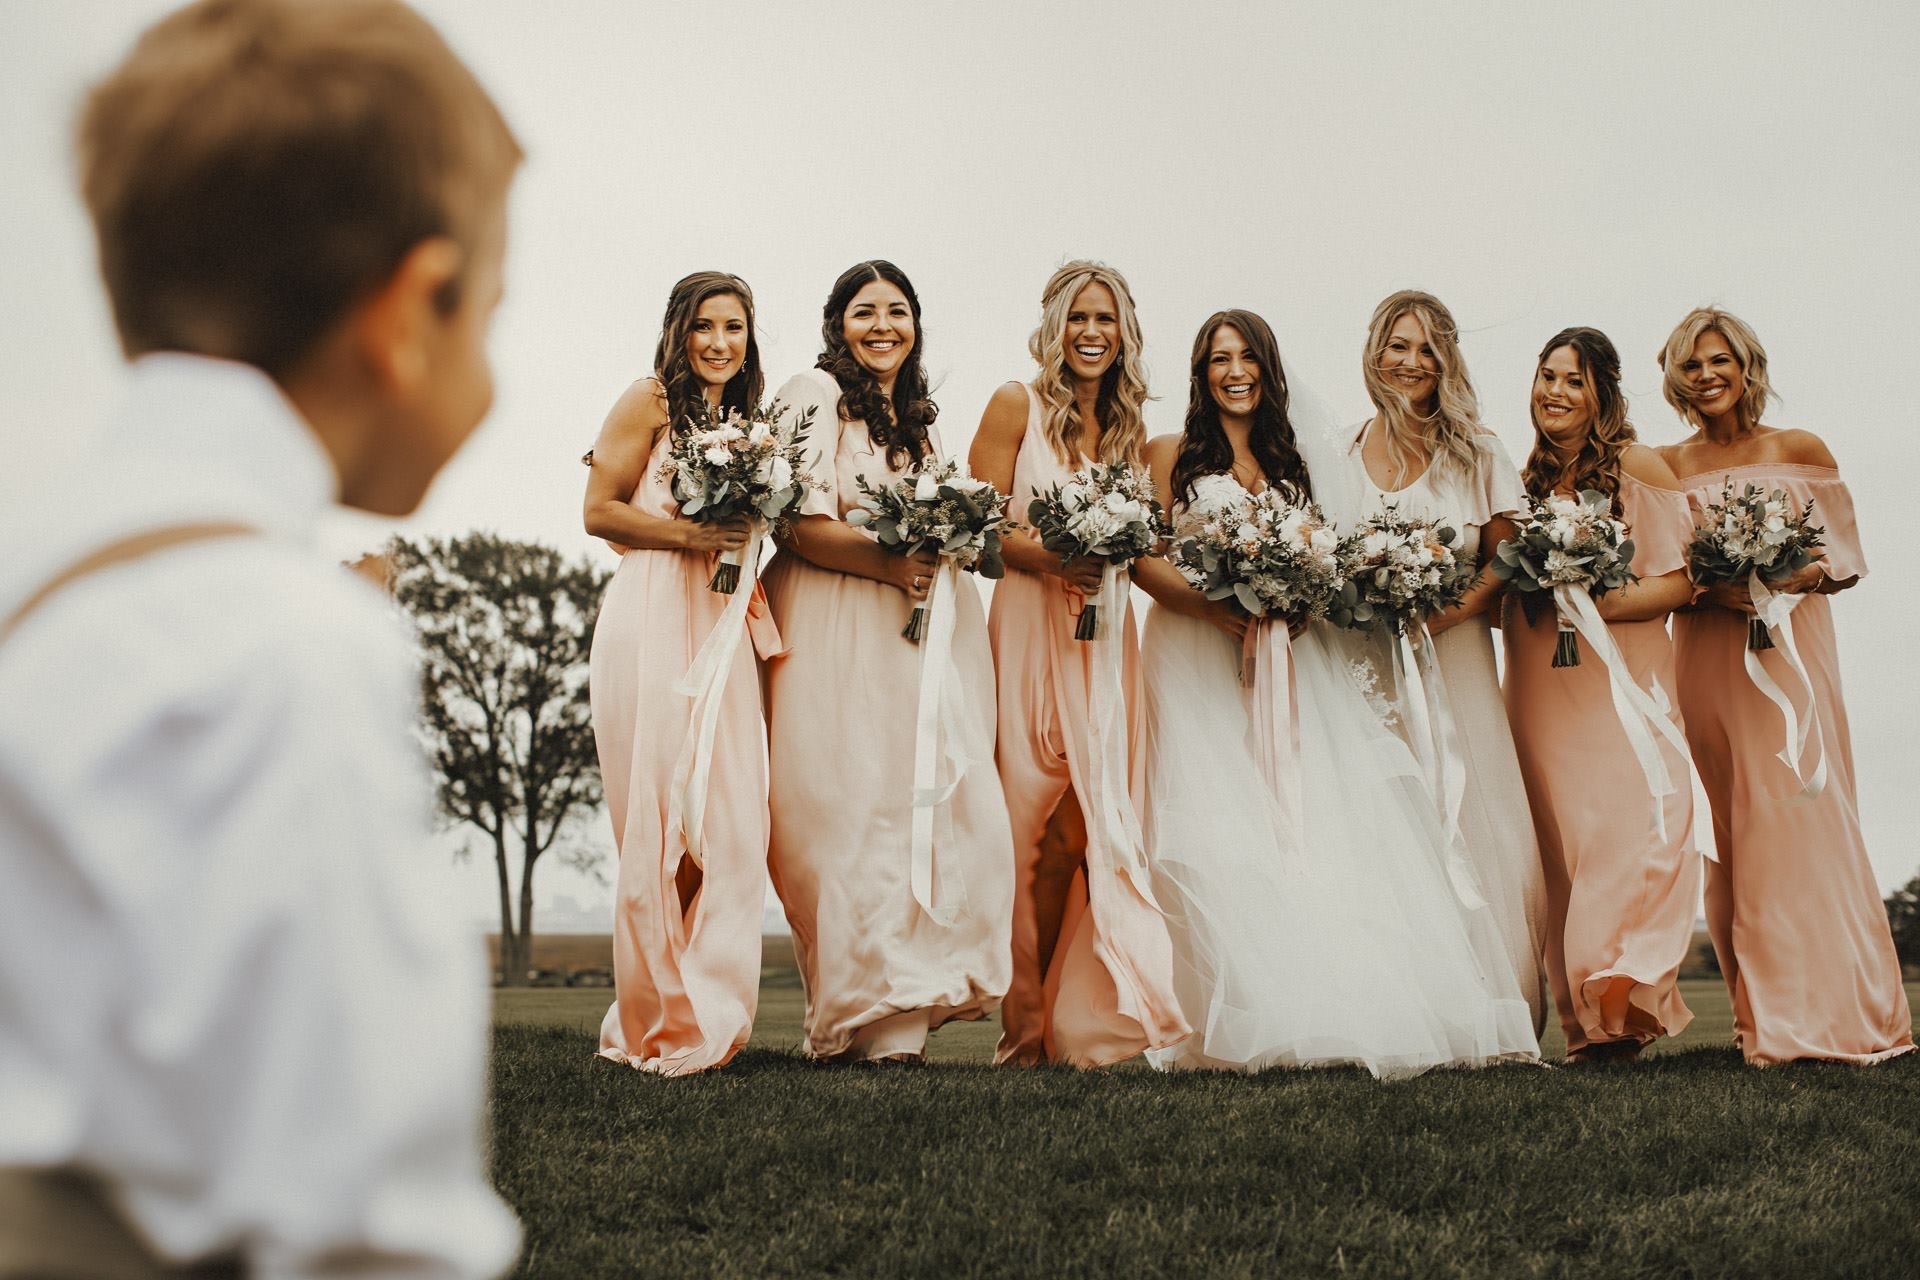 All of our Wedding Vendors: Reviewed | Pine Barren Beauty | wedding photos, wedding photography, wedding photography ideas, bridal party photos, bridal party color scheme, show me your mumu bridal party dresses, wedding flower bouquets, pocket full of posies